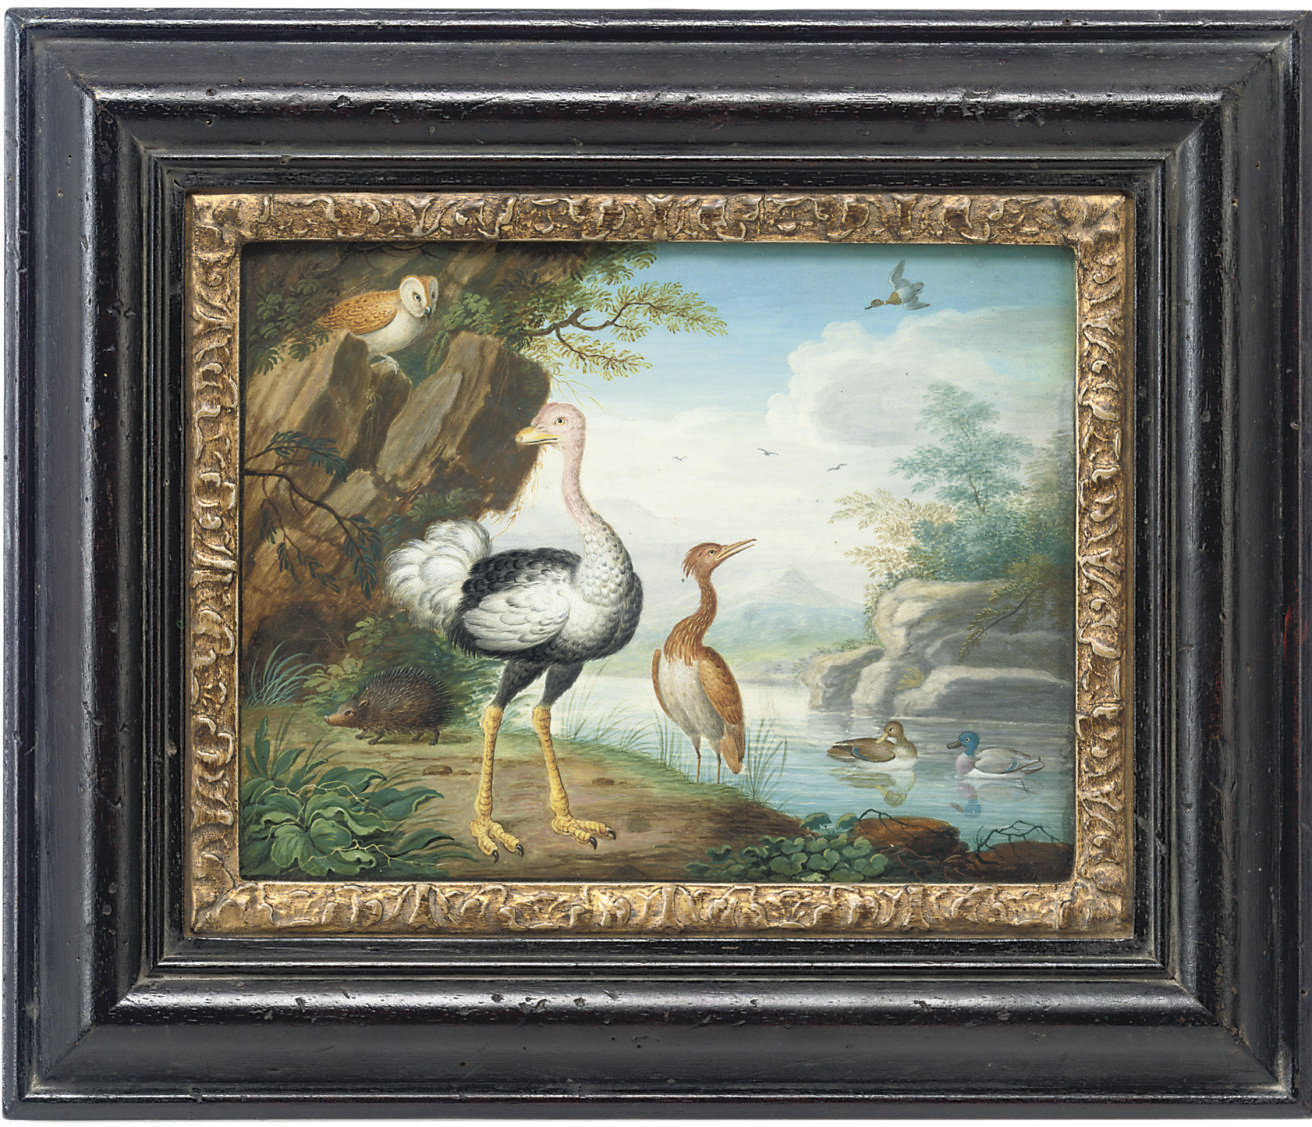 Exotic birds and an owl on the banks of a river